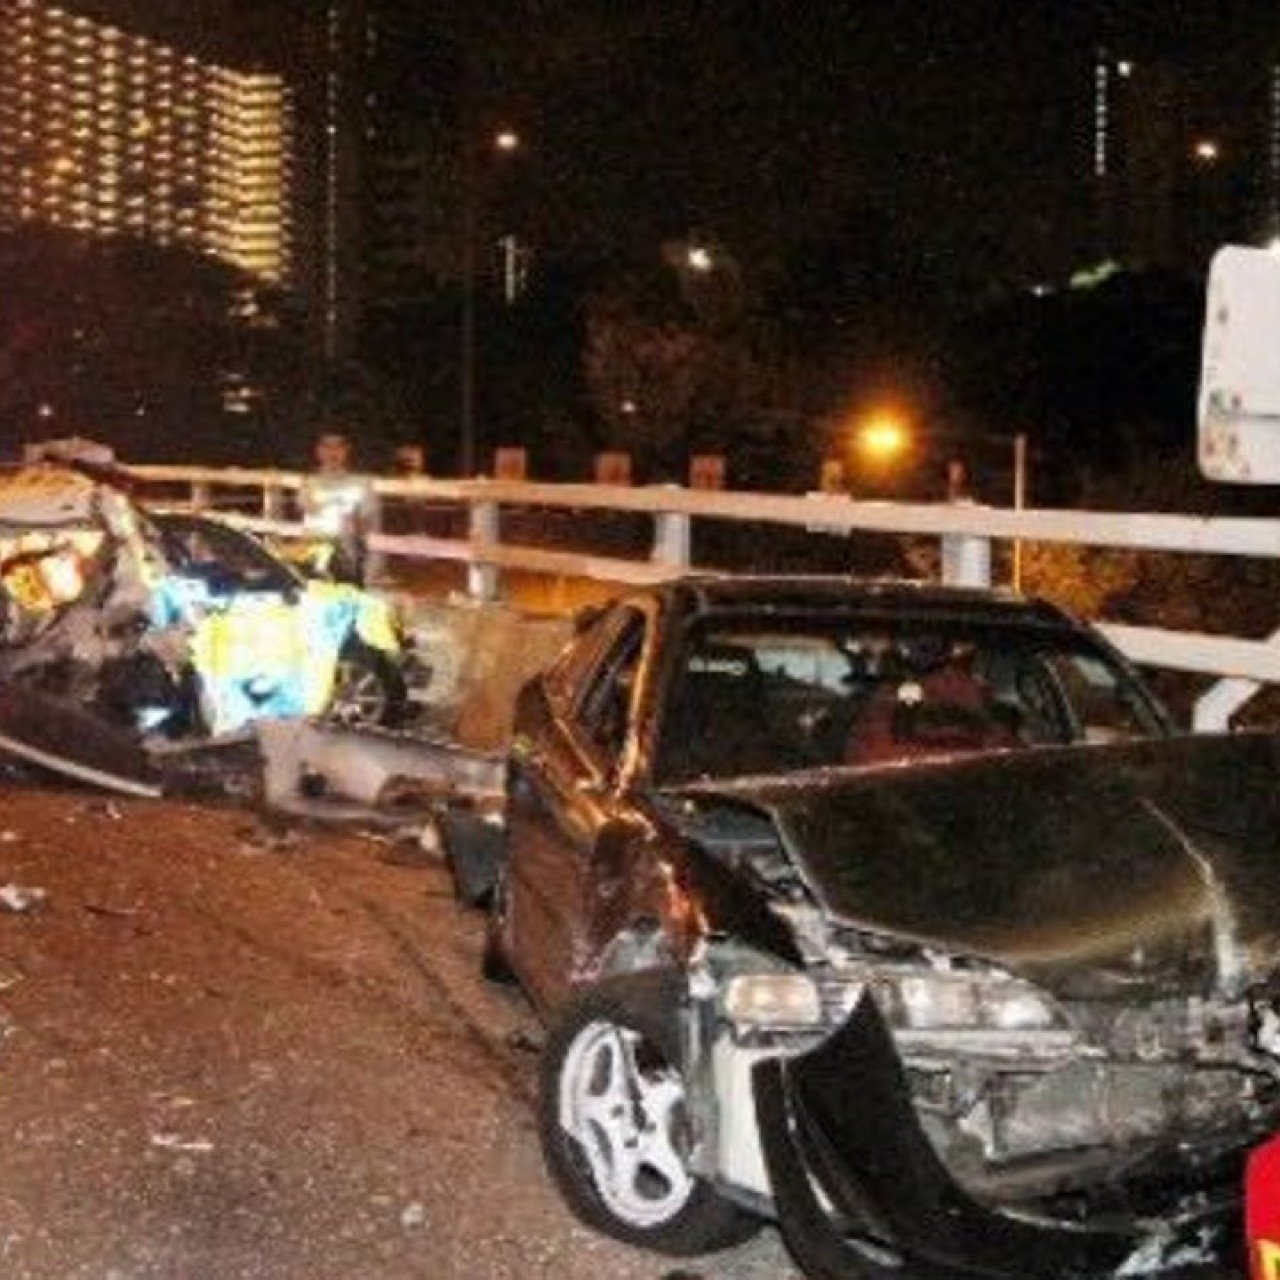 Hong Kong bus crashes into police vehicle and car from